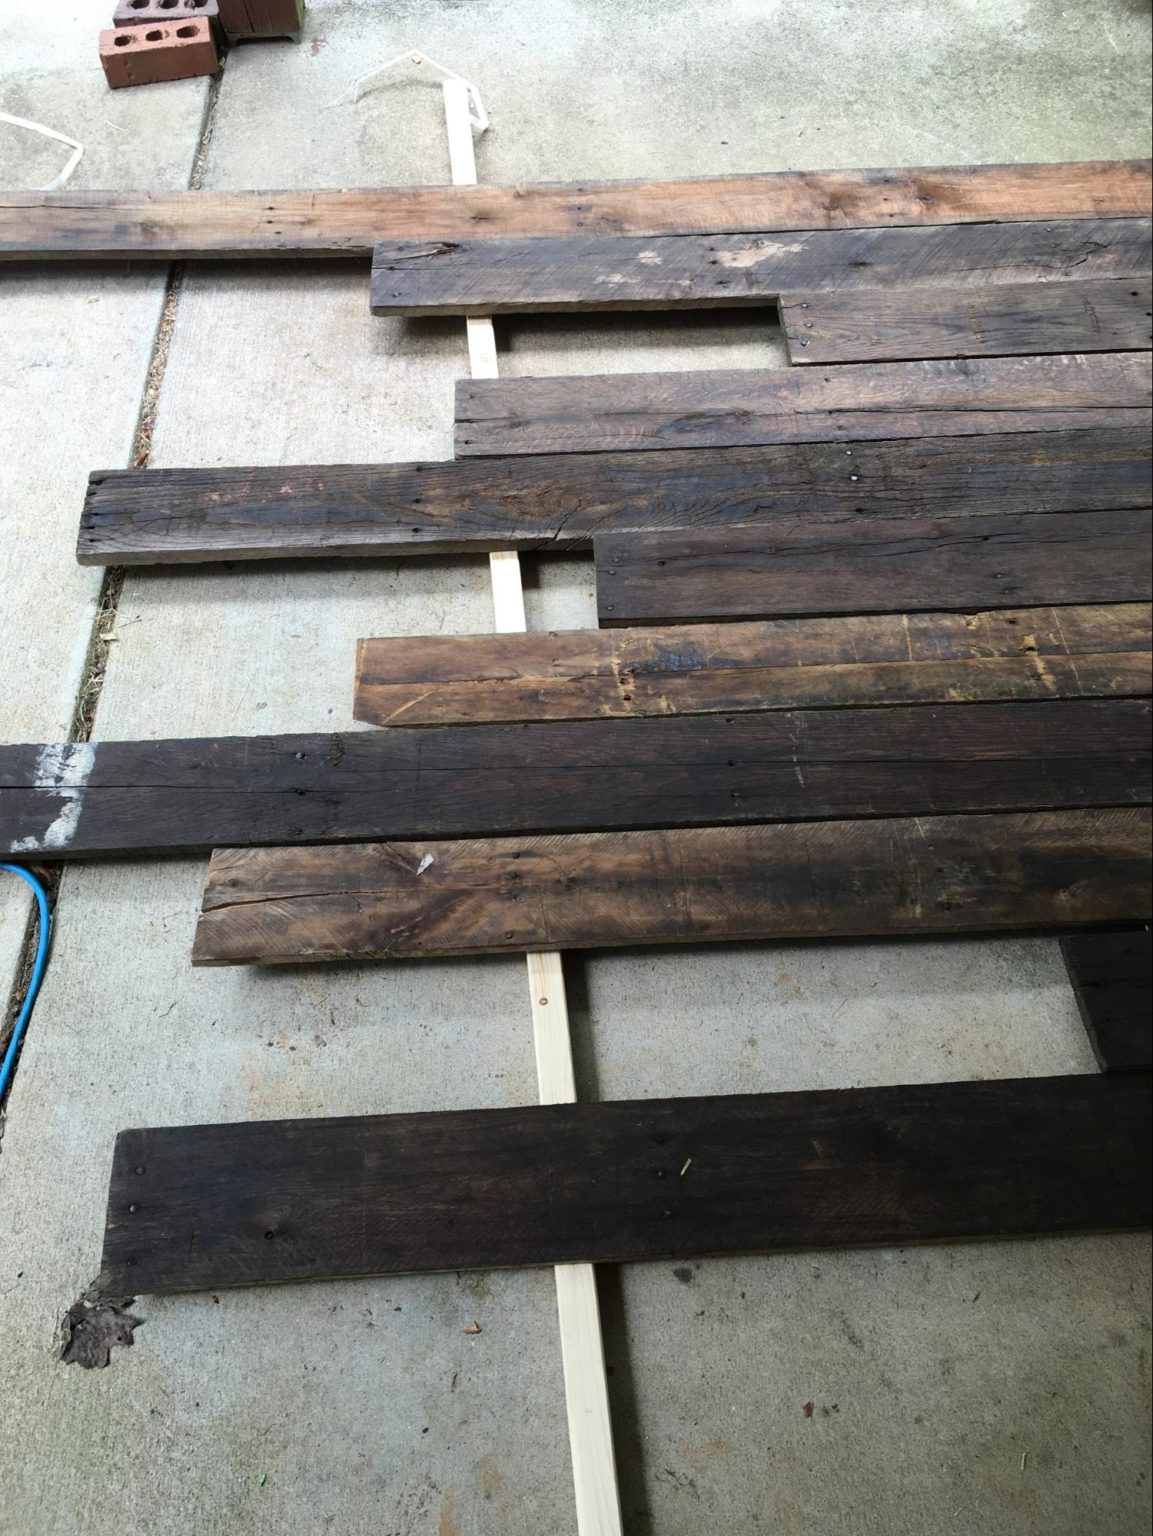 How to build wood wall backdrop for home office - Anyvoo - Staining the wood